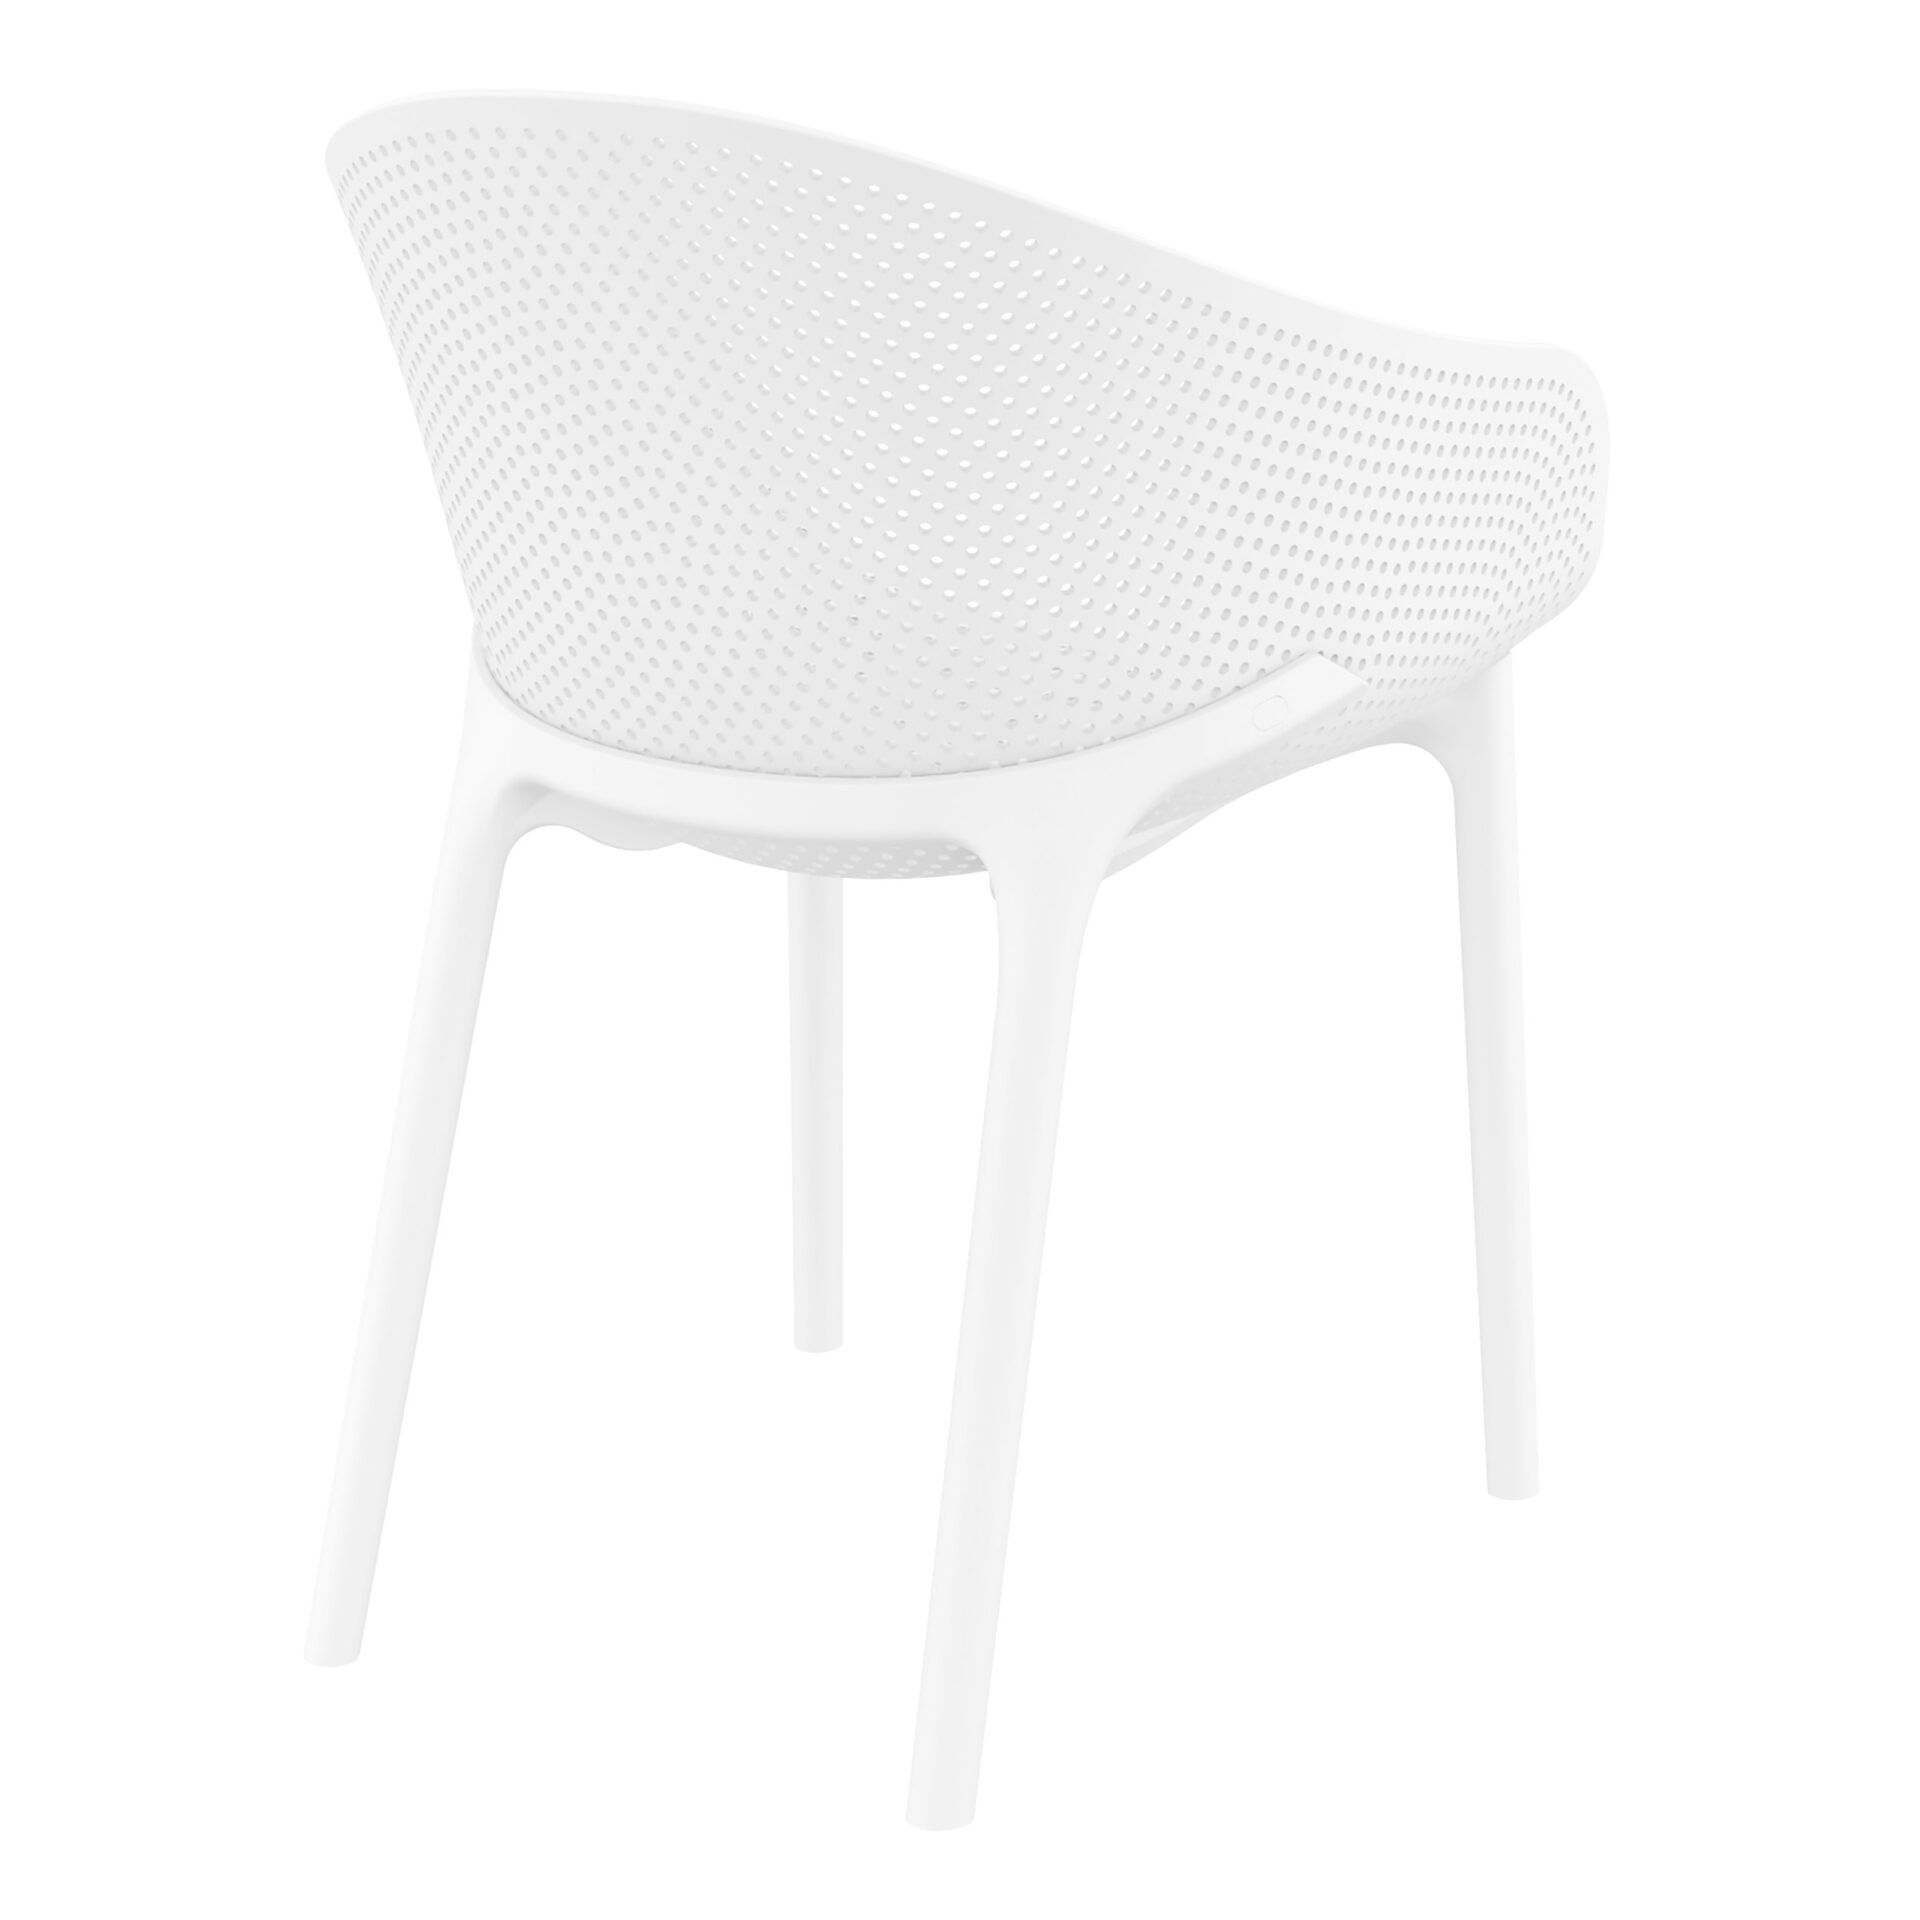 outdoor seating polypropylene sky chair white back side